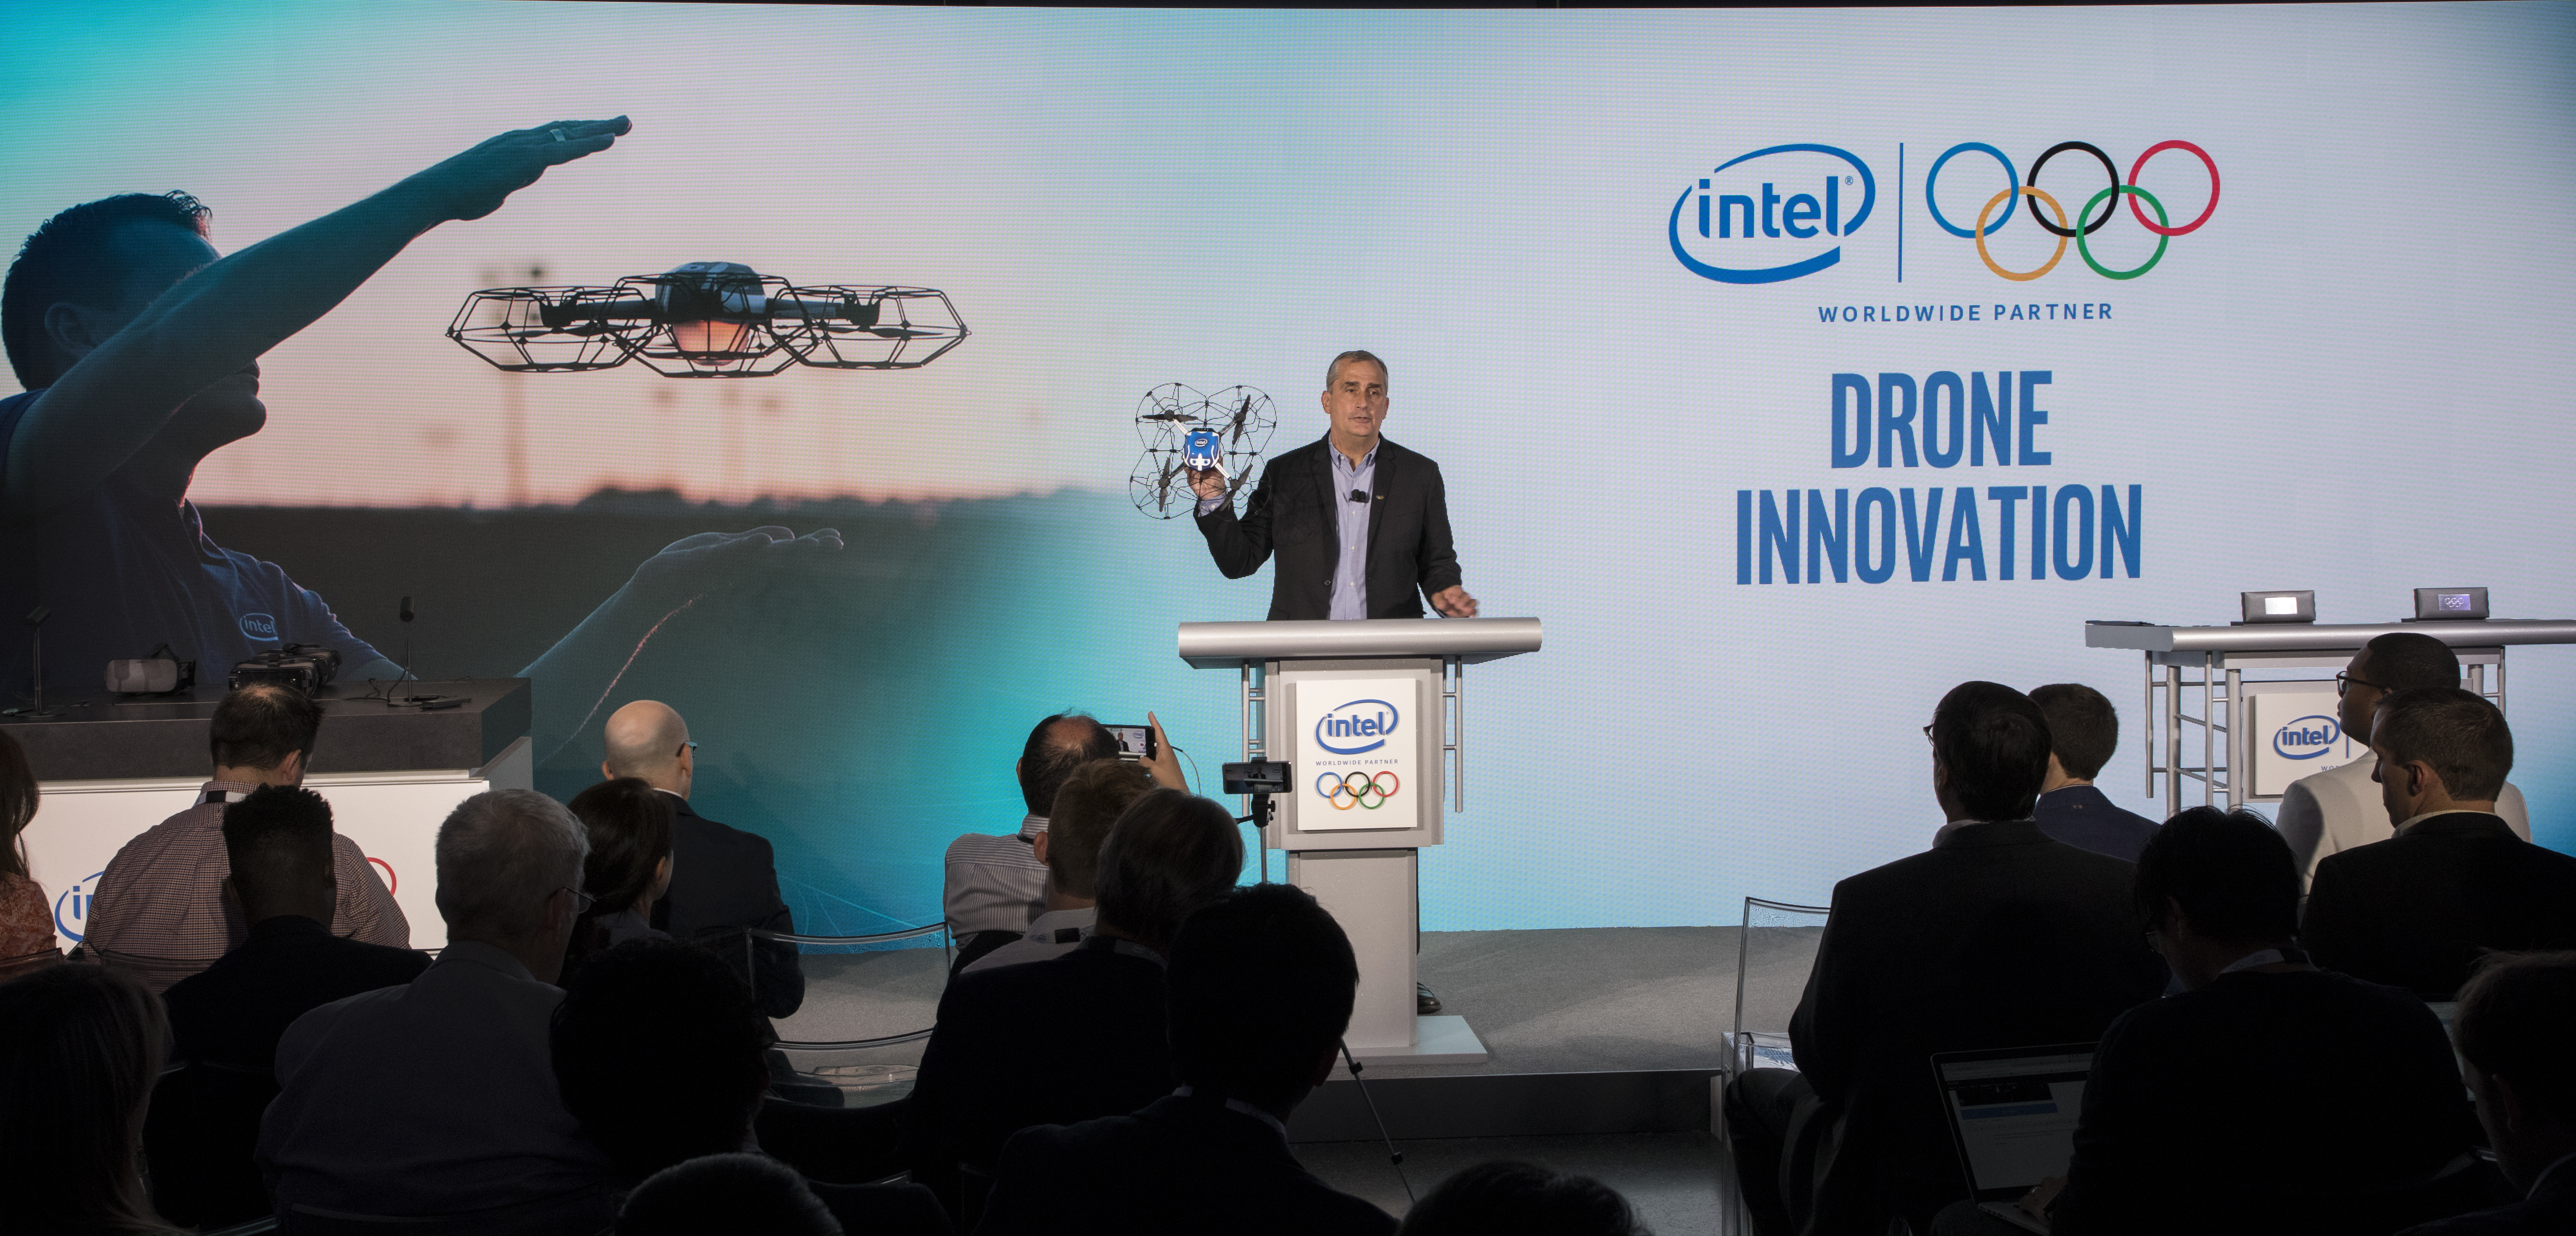 Intel drones are coming to the next Olympics